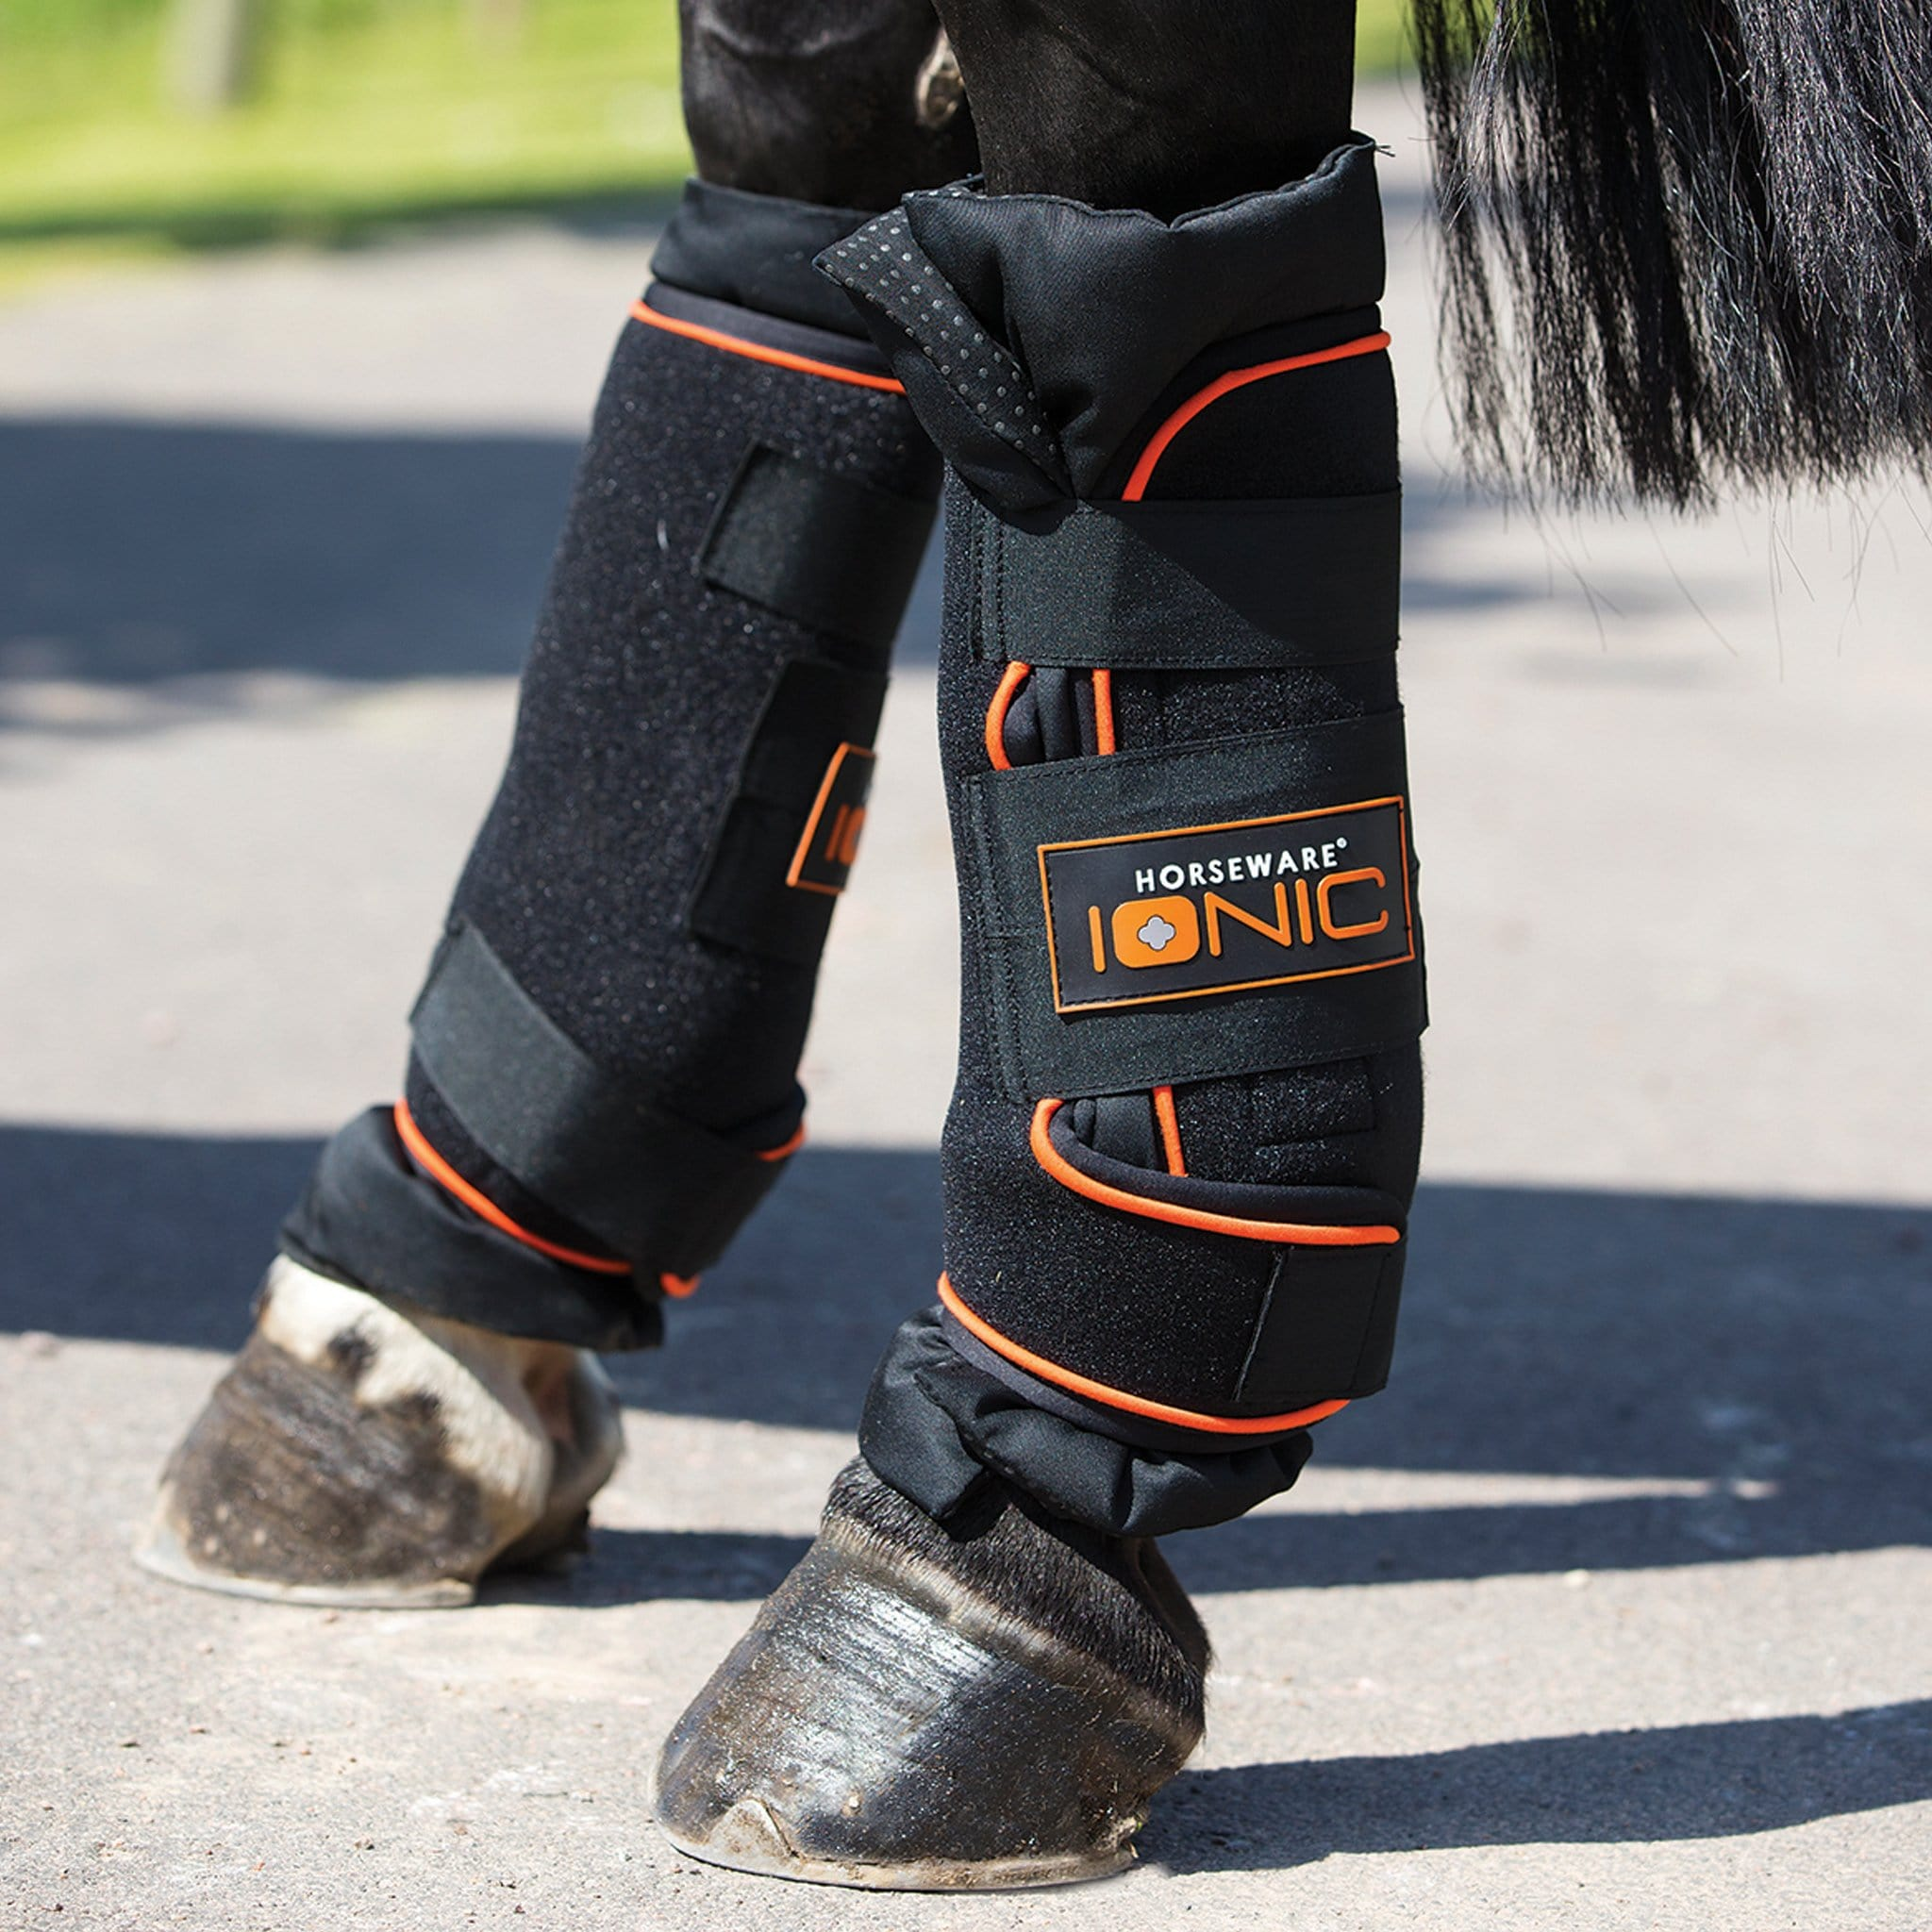 Horseware Rambo Ionic Stable Boots DBJK50 Ionic Tab Black with Orange Stripe